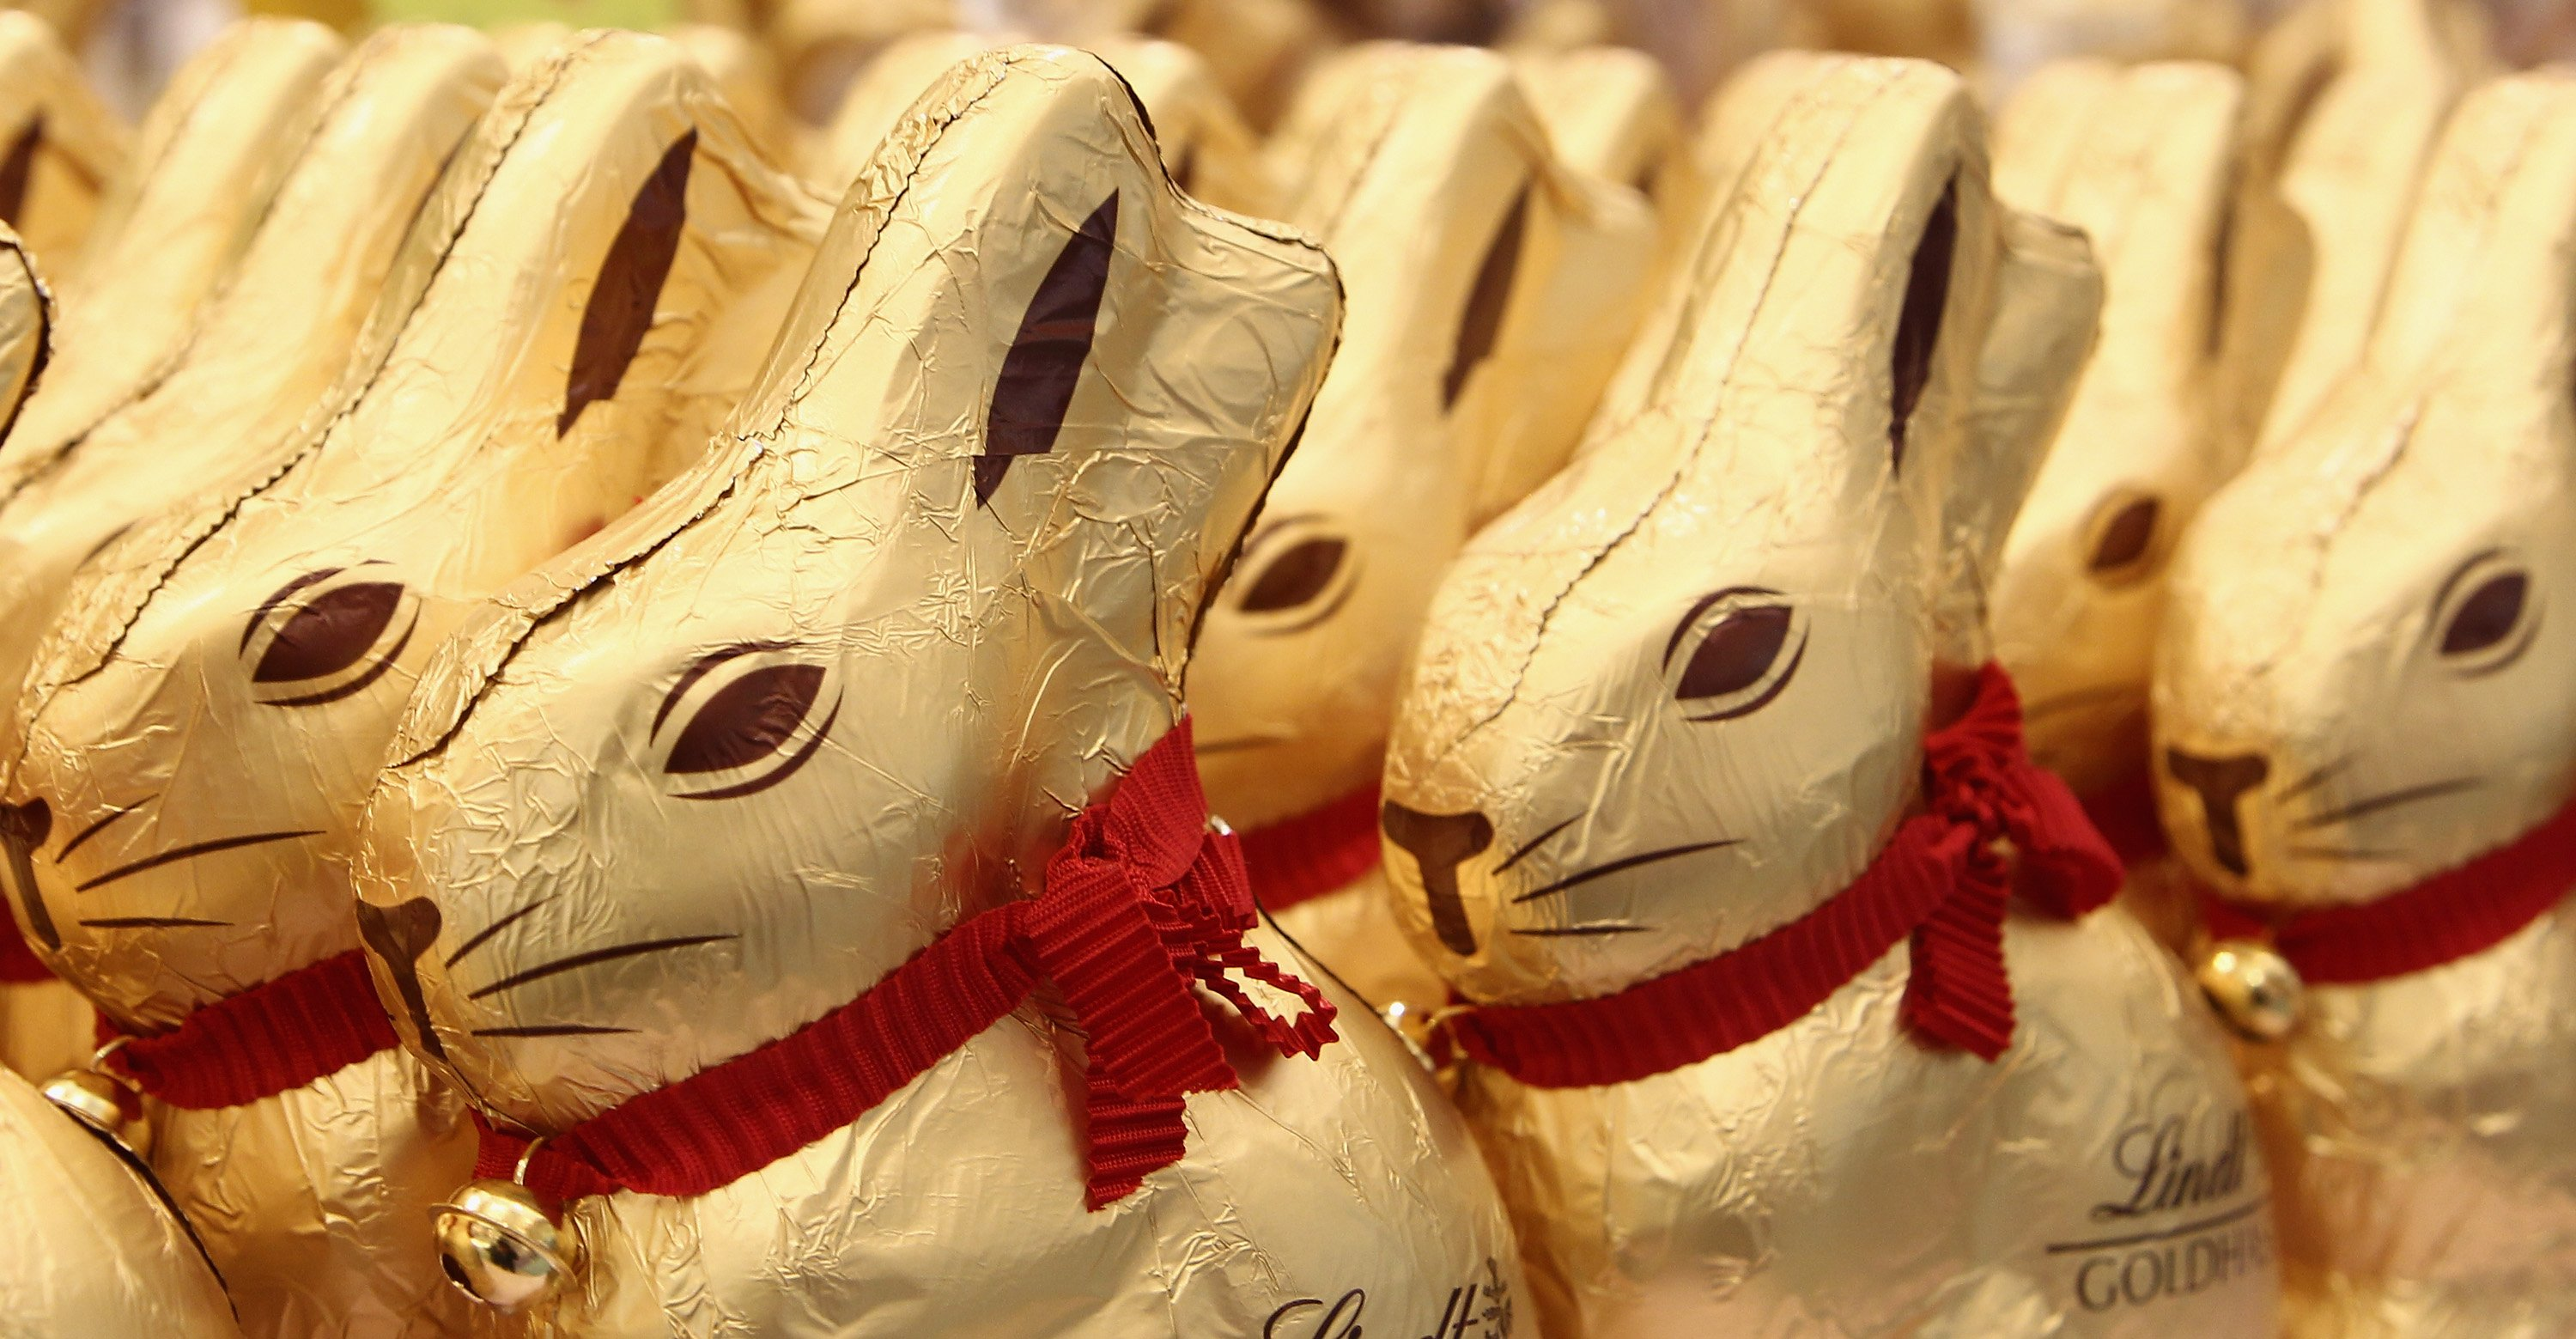 Chocolate Easter candy now cited as environmental hazard by researchers